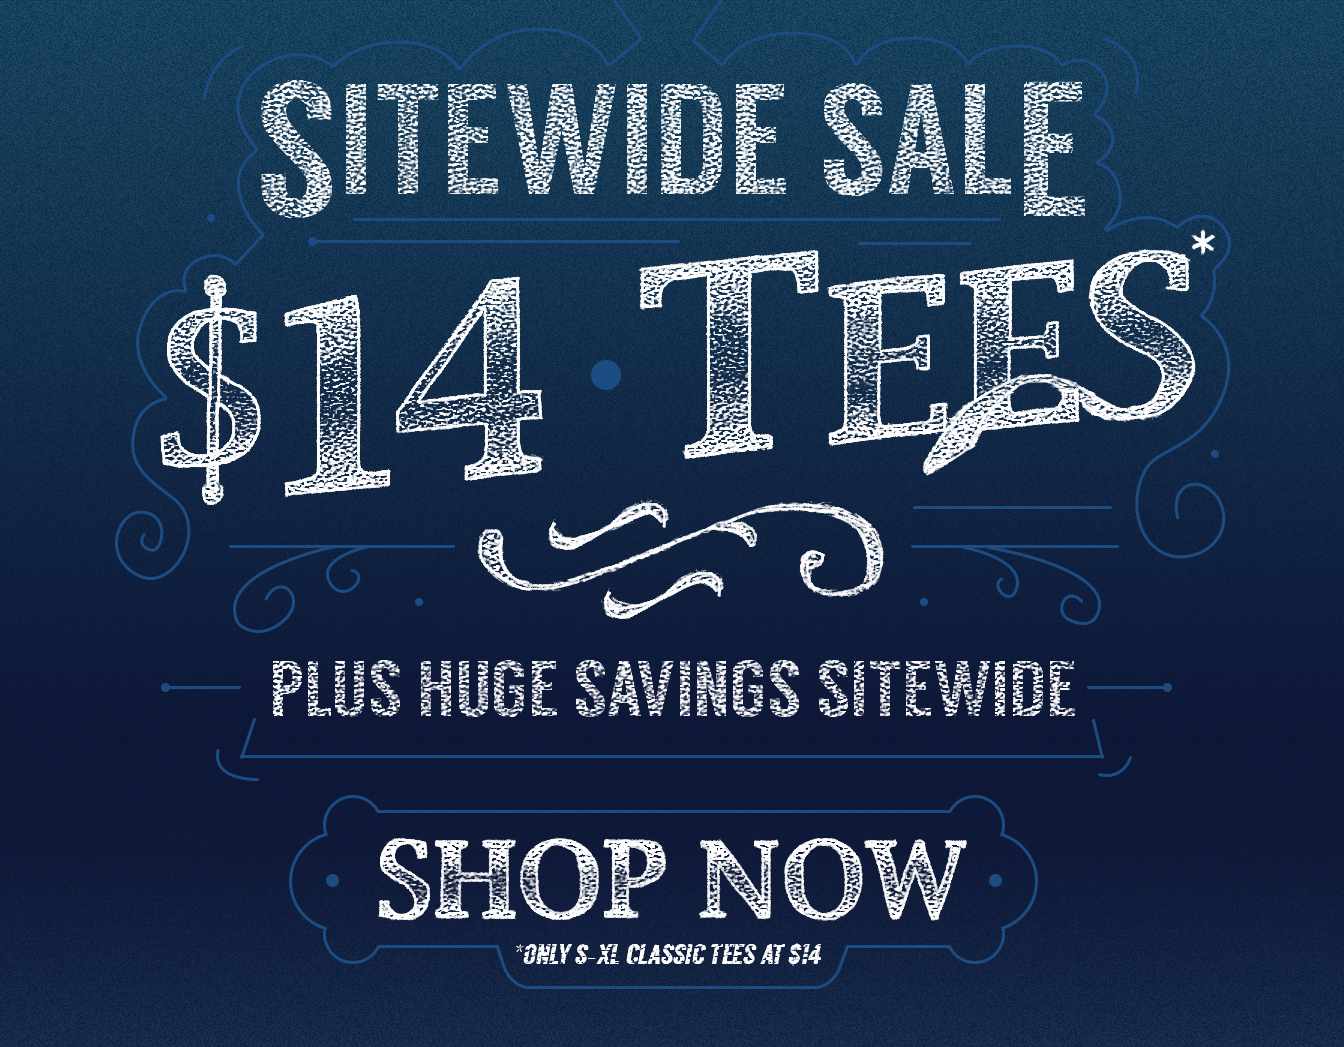 Sitewide Sale! Tees Just $14 Plus Huge Savings Sitewide!